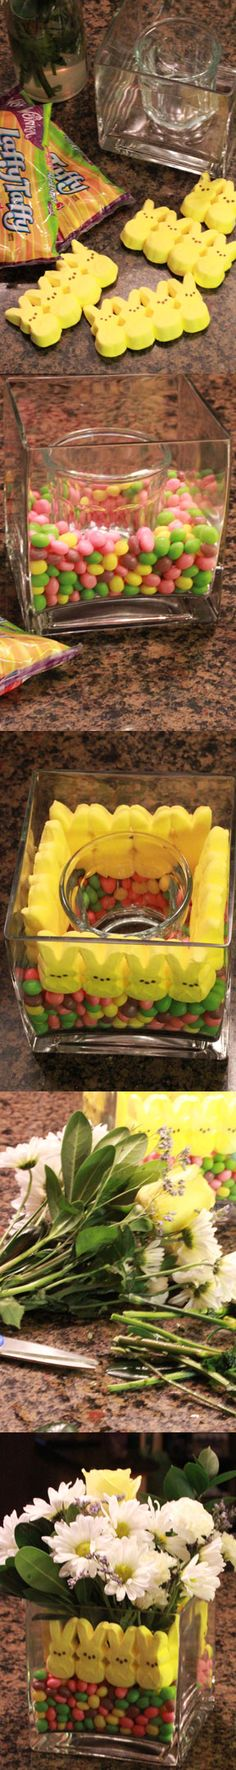 How to create a Peeps centerpiece #DIY #Easter #Peeps